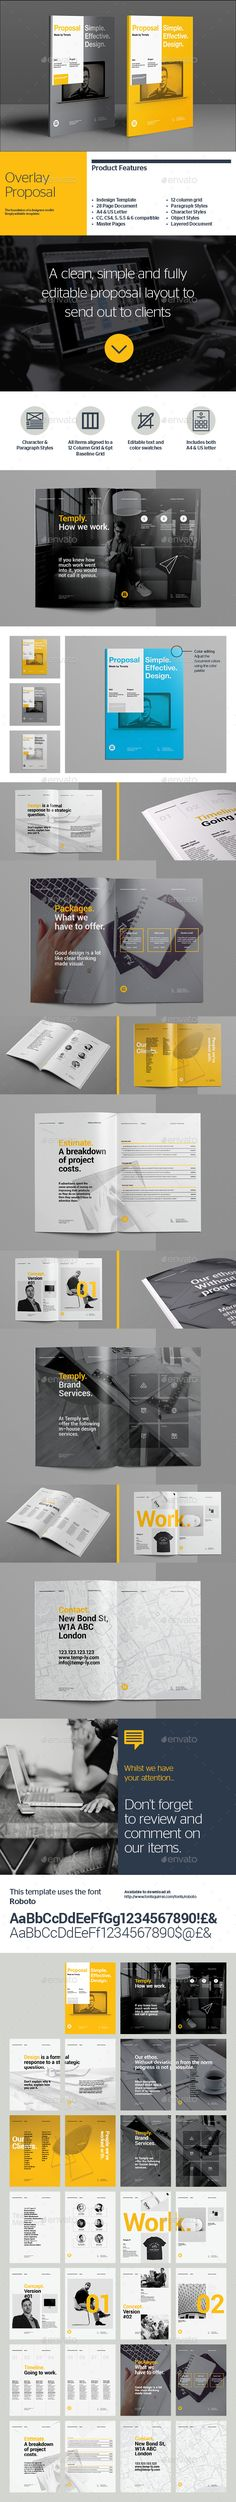 Proposal Template u2014 Photoshop PSD #company proposal #corporate - proposal template